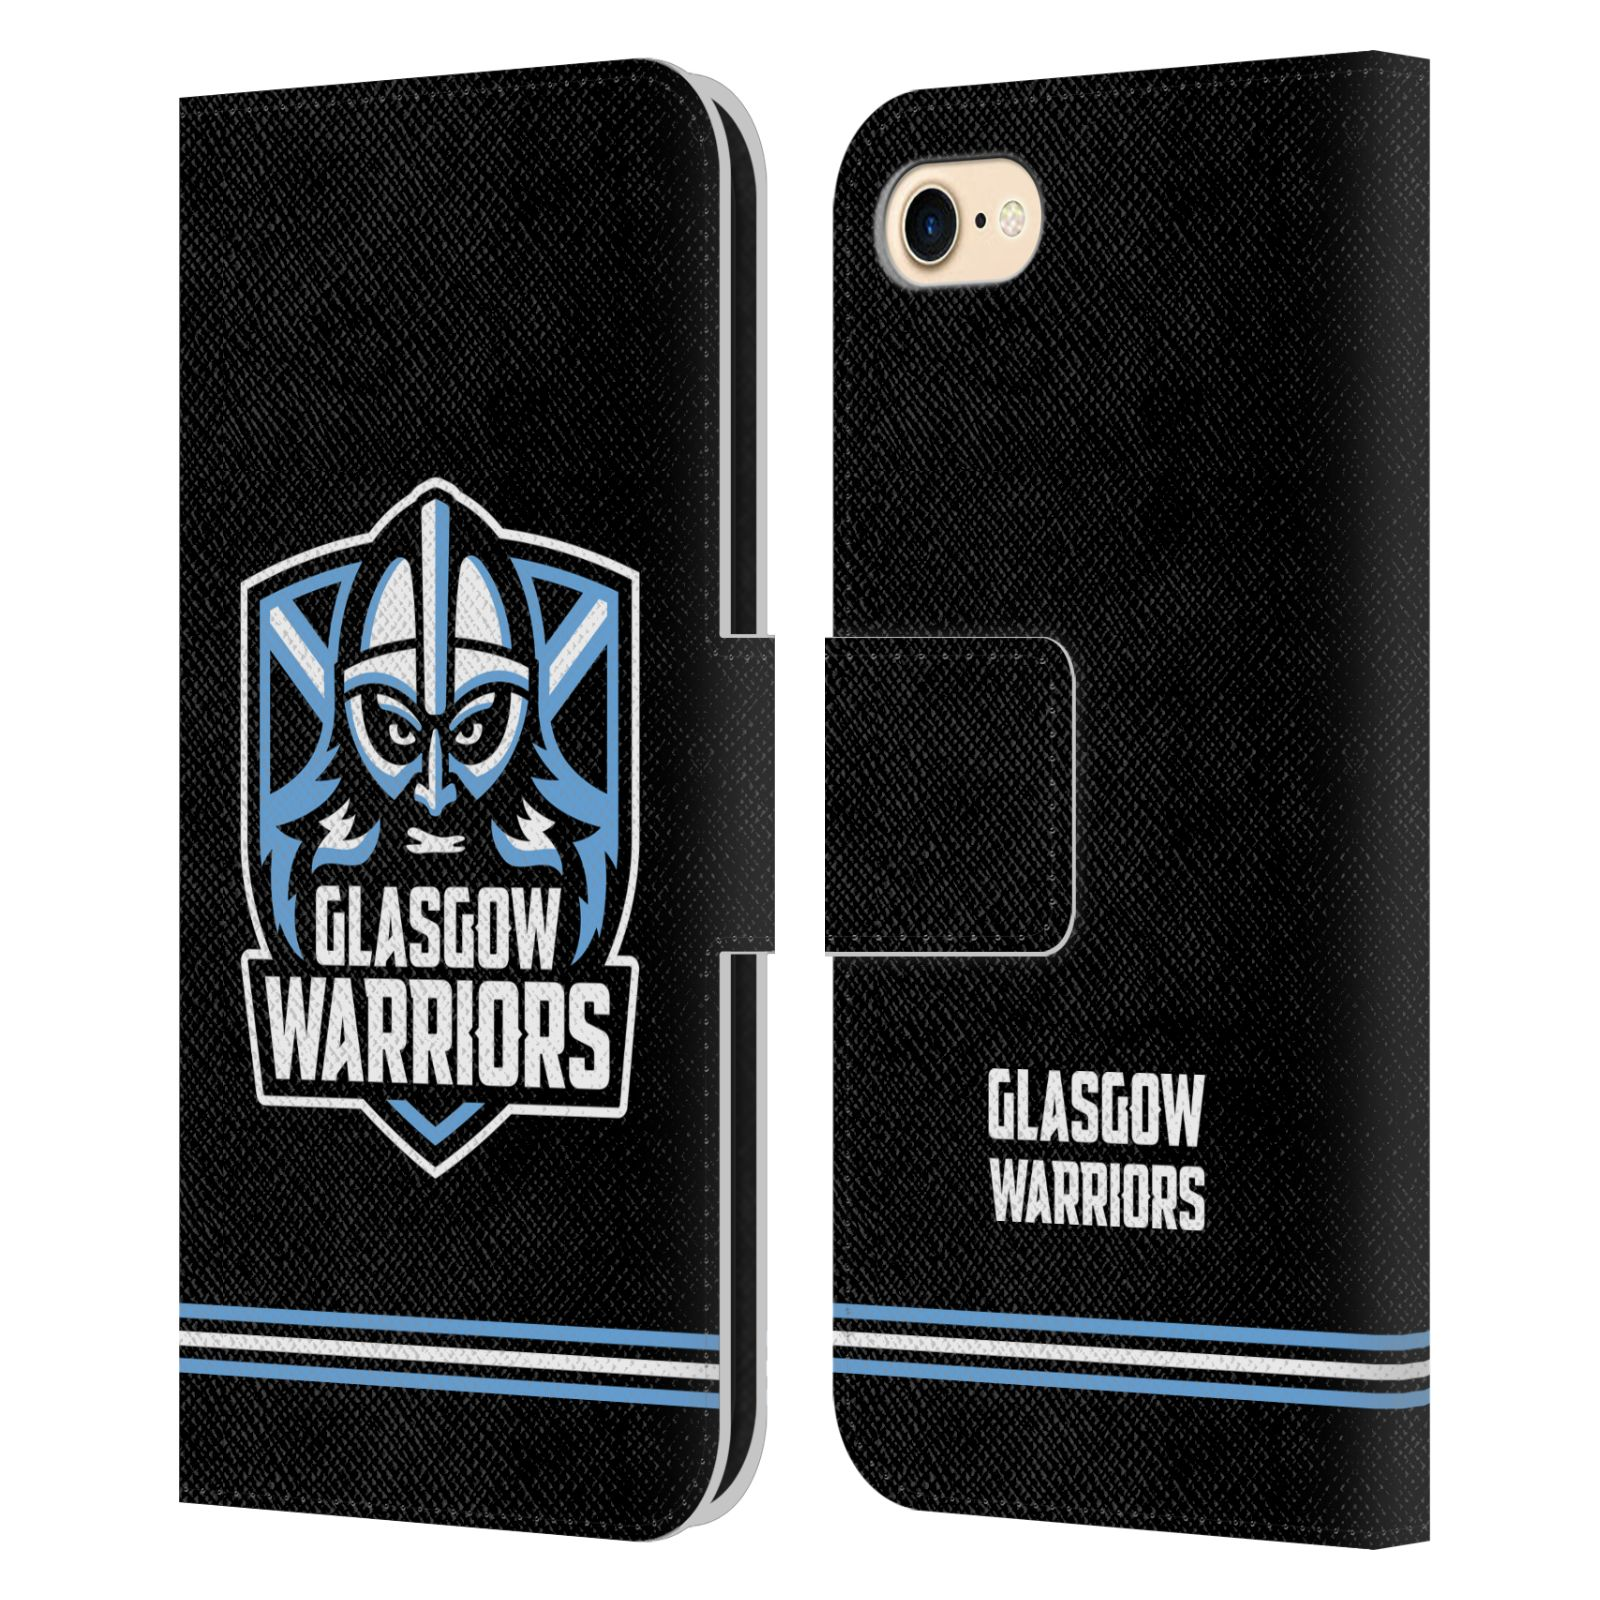 Official Glasgow Warriors 2019/20 Logo Art Stripes Black Leather Book Wallet Case For Apple iPhone 7 / 8 / iPhone SE 2020